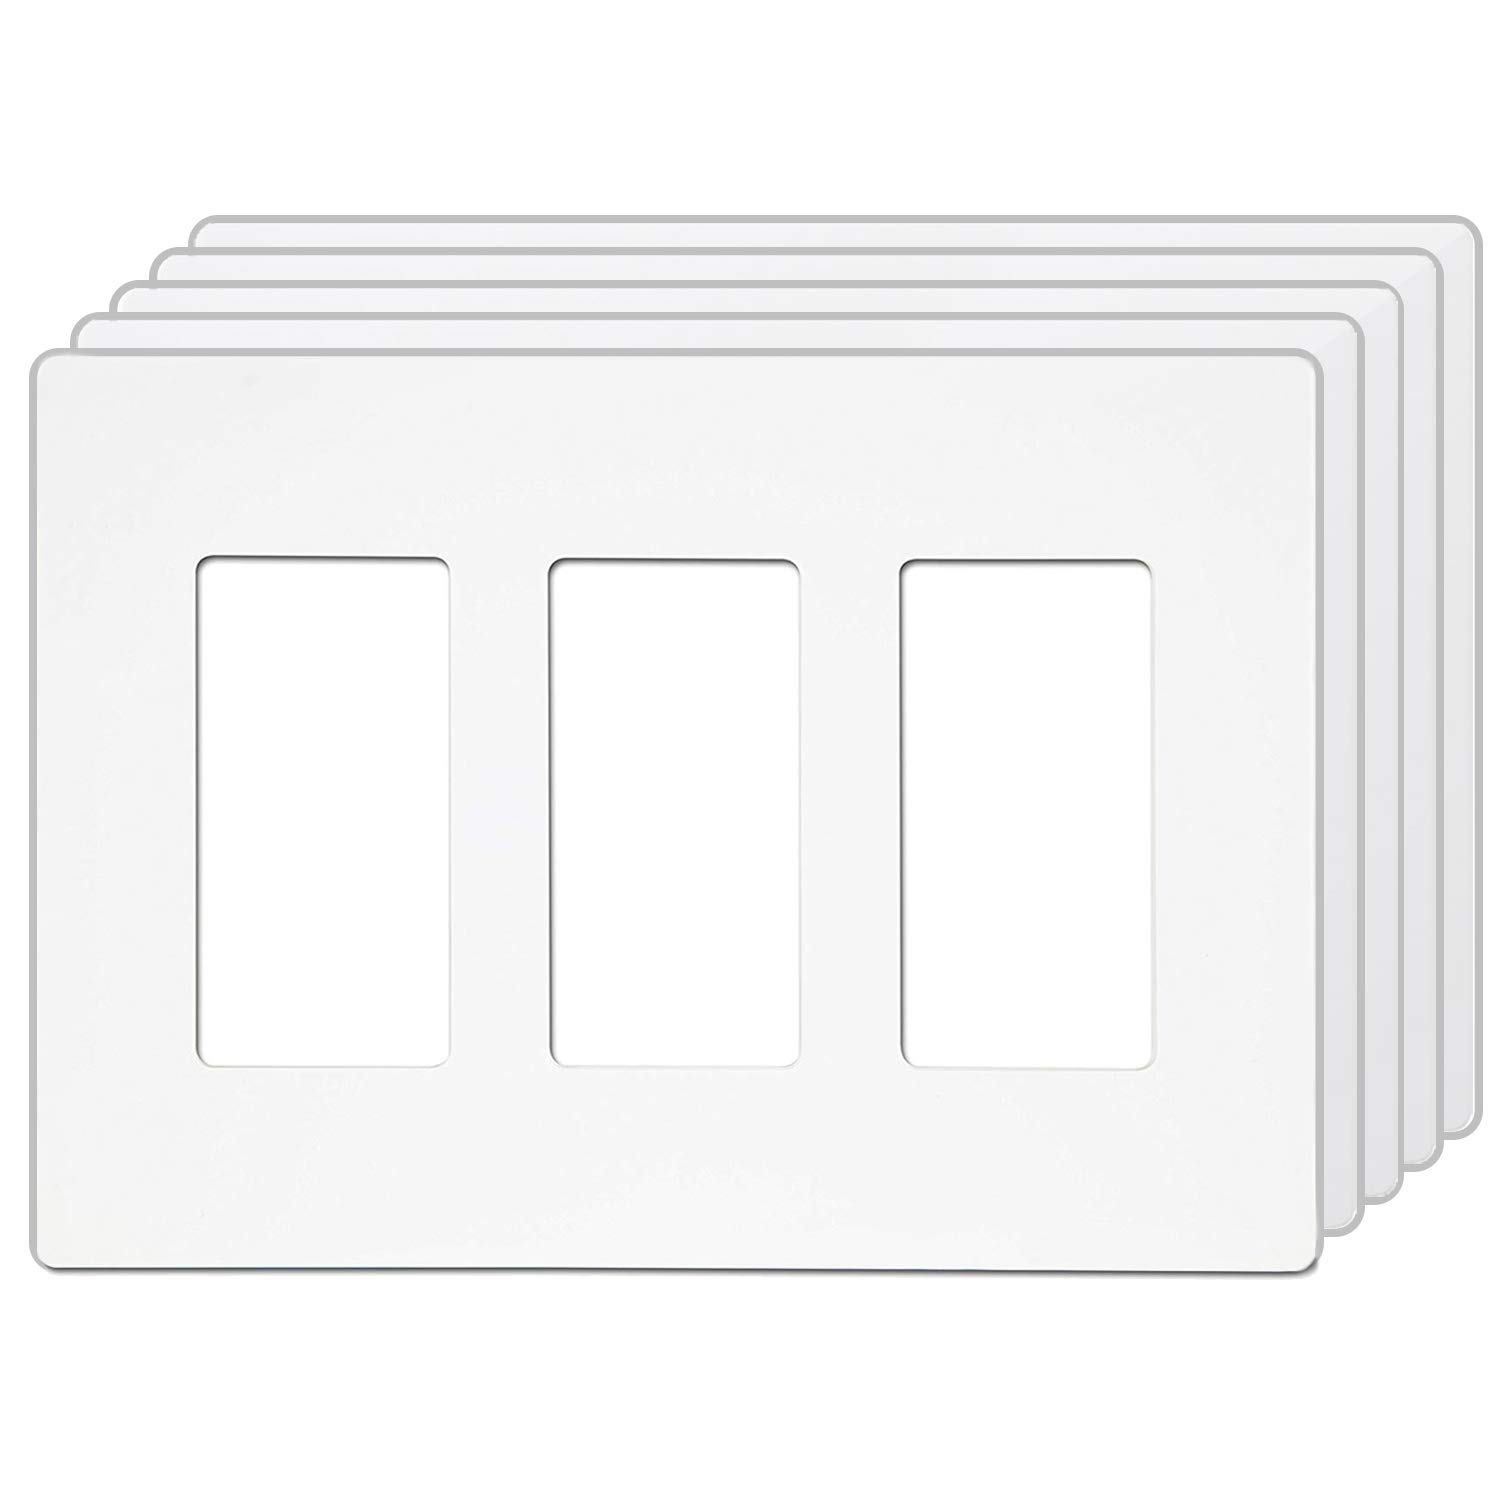 [5 Pack] BESTTEN USWP4 Series, 3-Gang Mid-Sized Light Switch Cover, Screwless Wallplate for GFCI Outlet, USB Receptacle, Dimmer, Timer and Sensor, Child Safe, Unbreakable PC, UL Listed, White